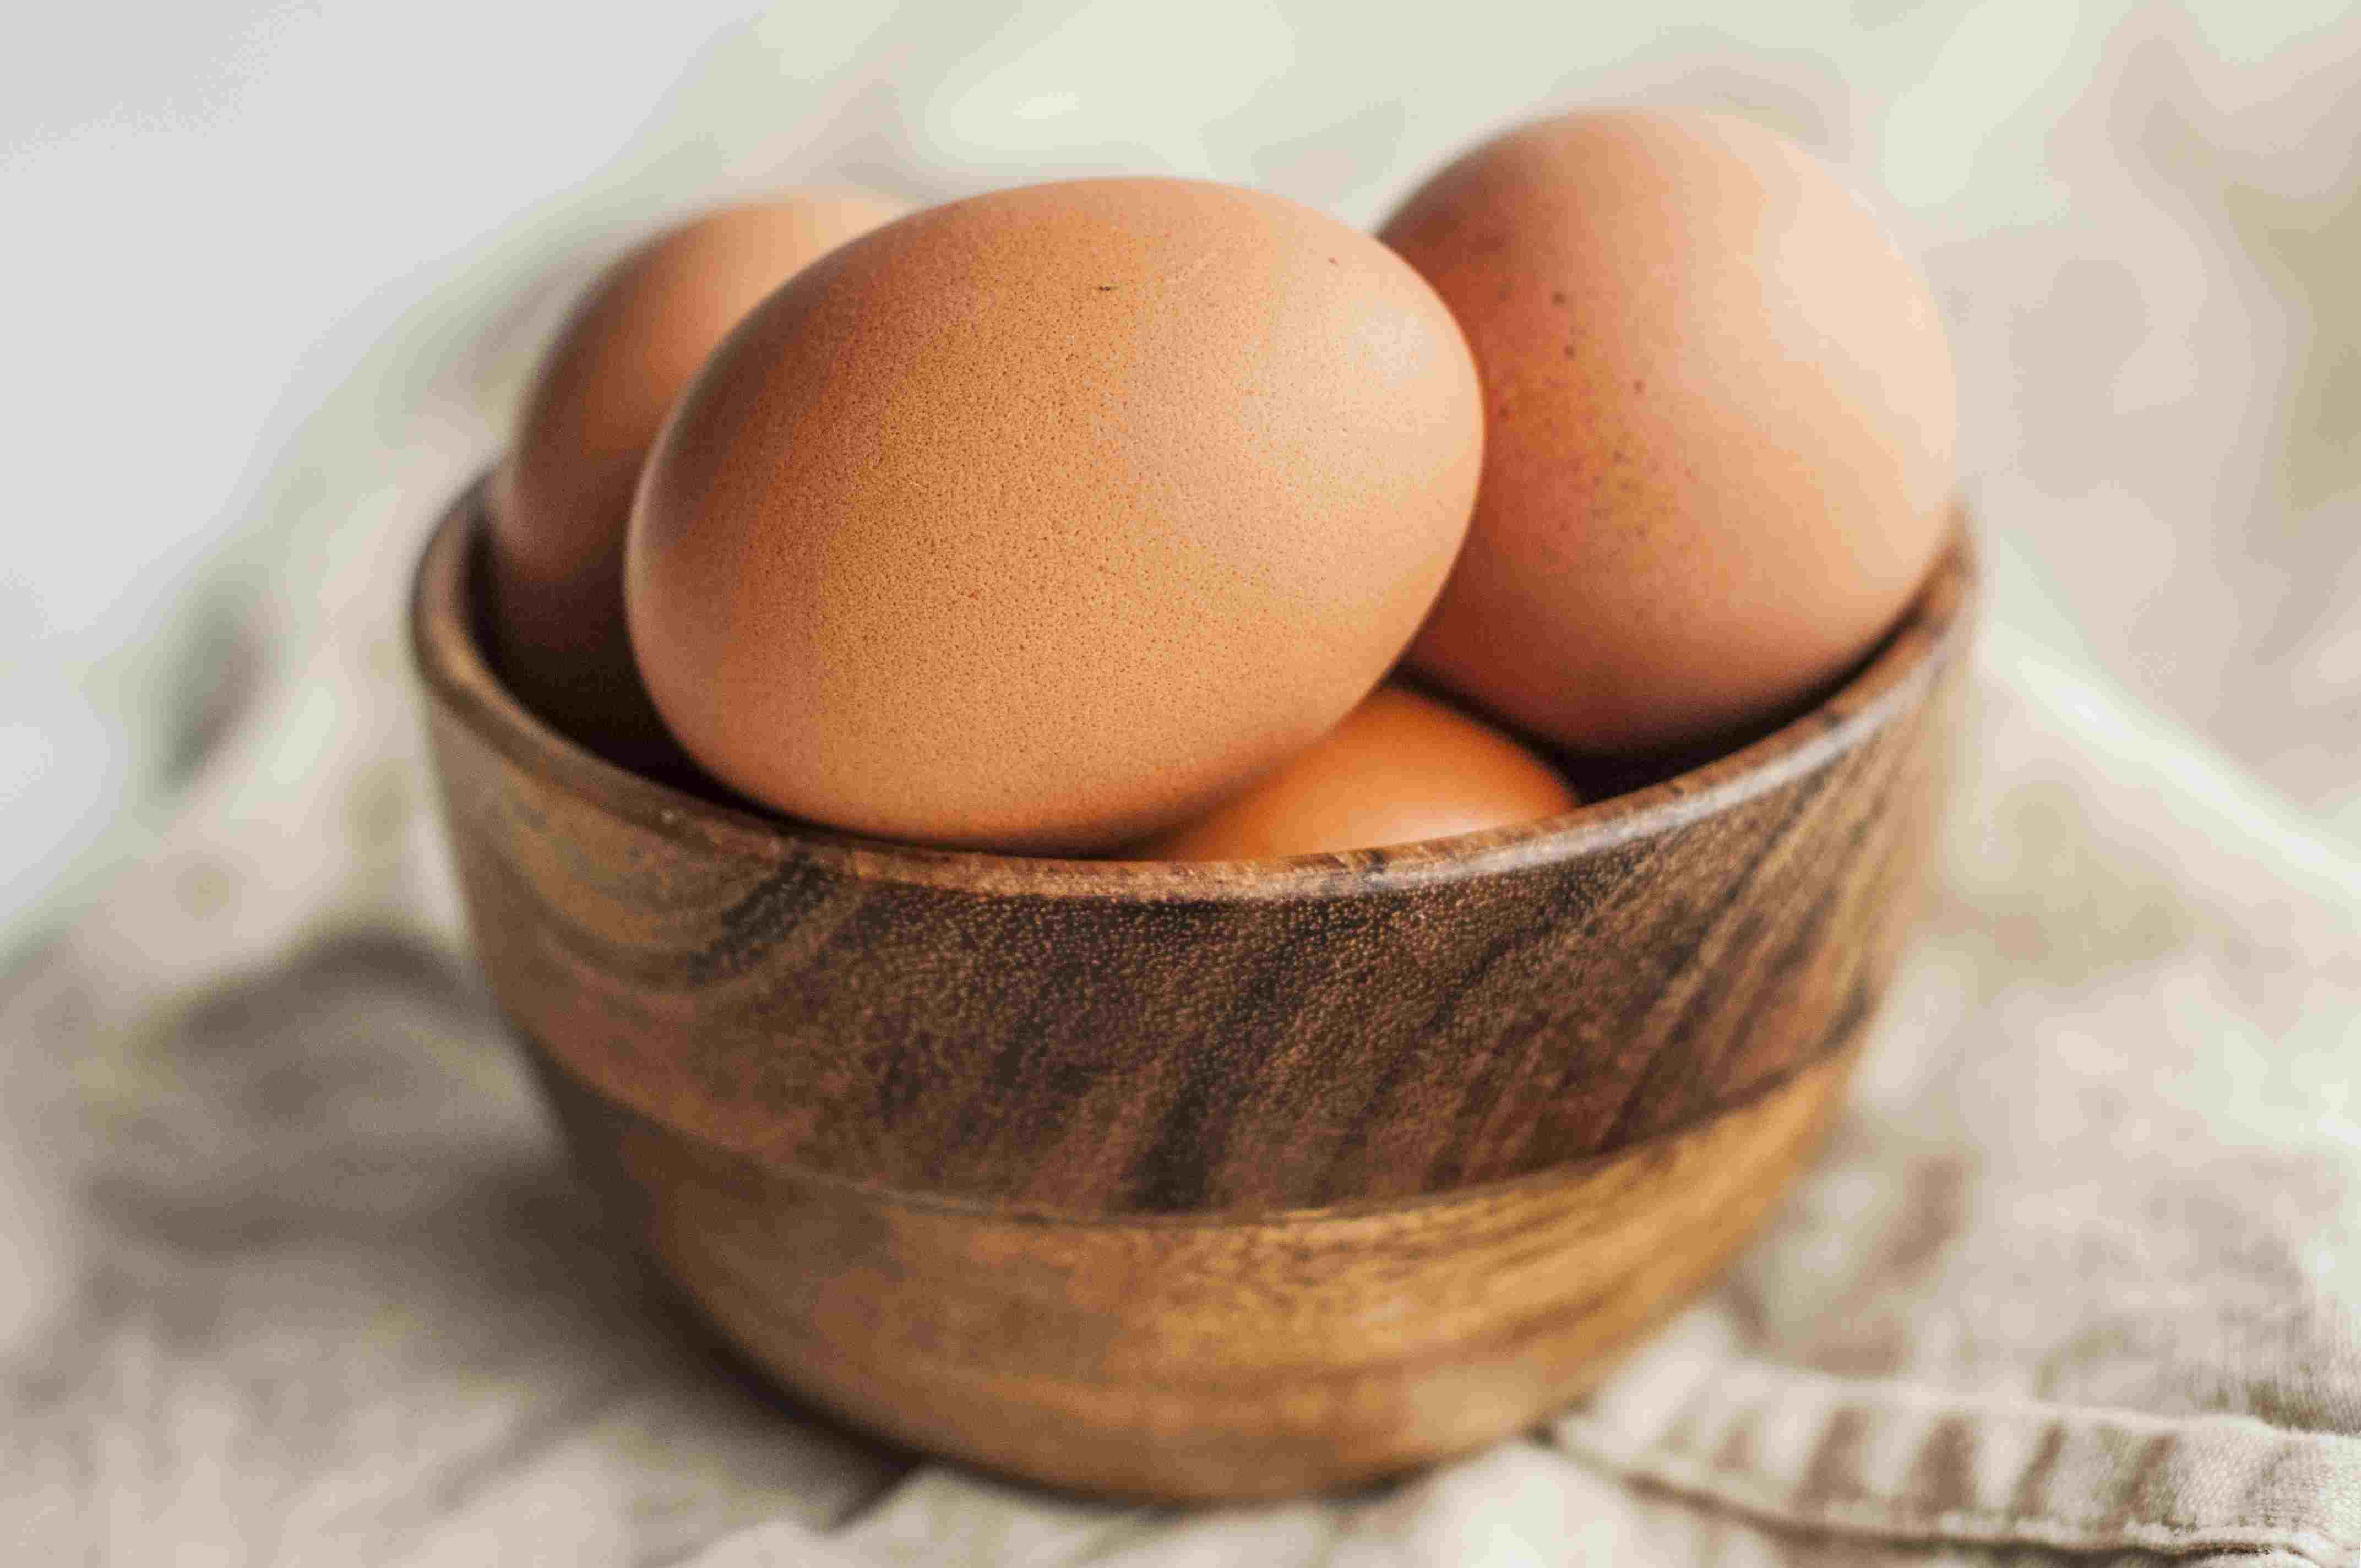 Finished hard-boiled eggs in a wooden bowl